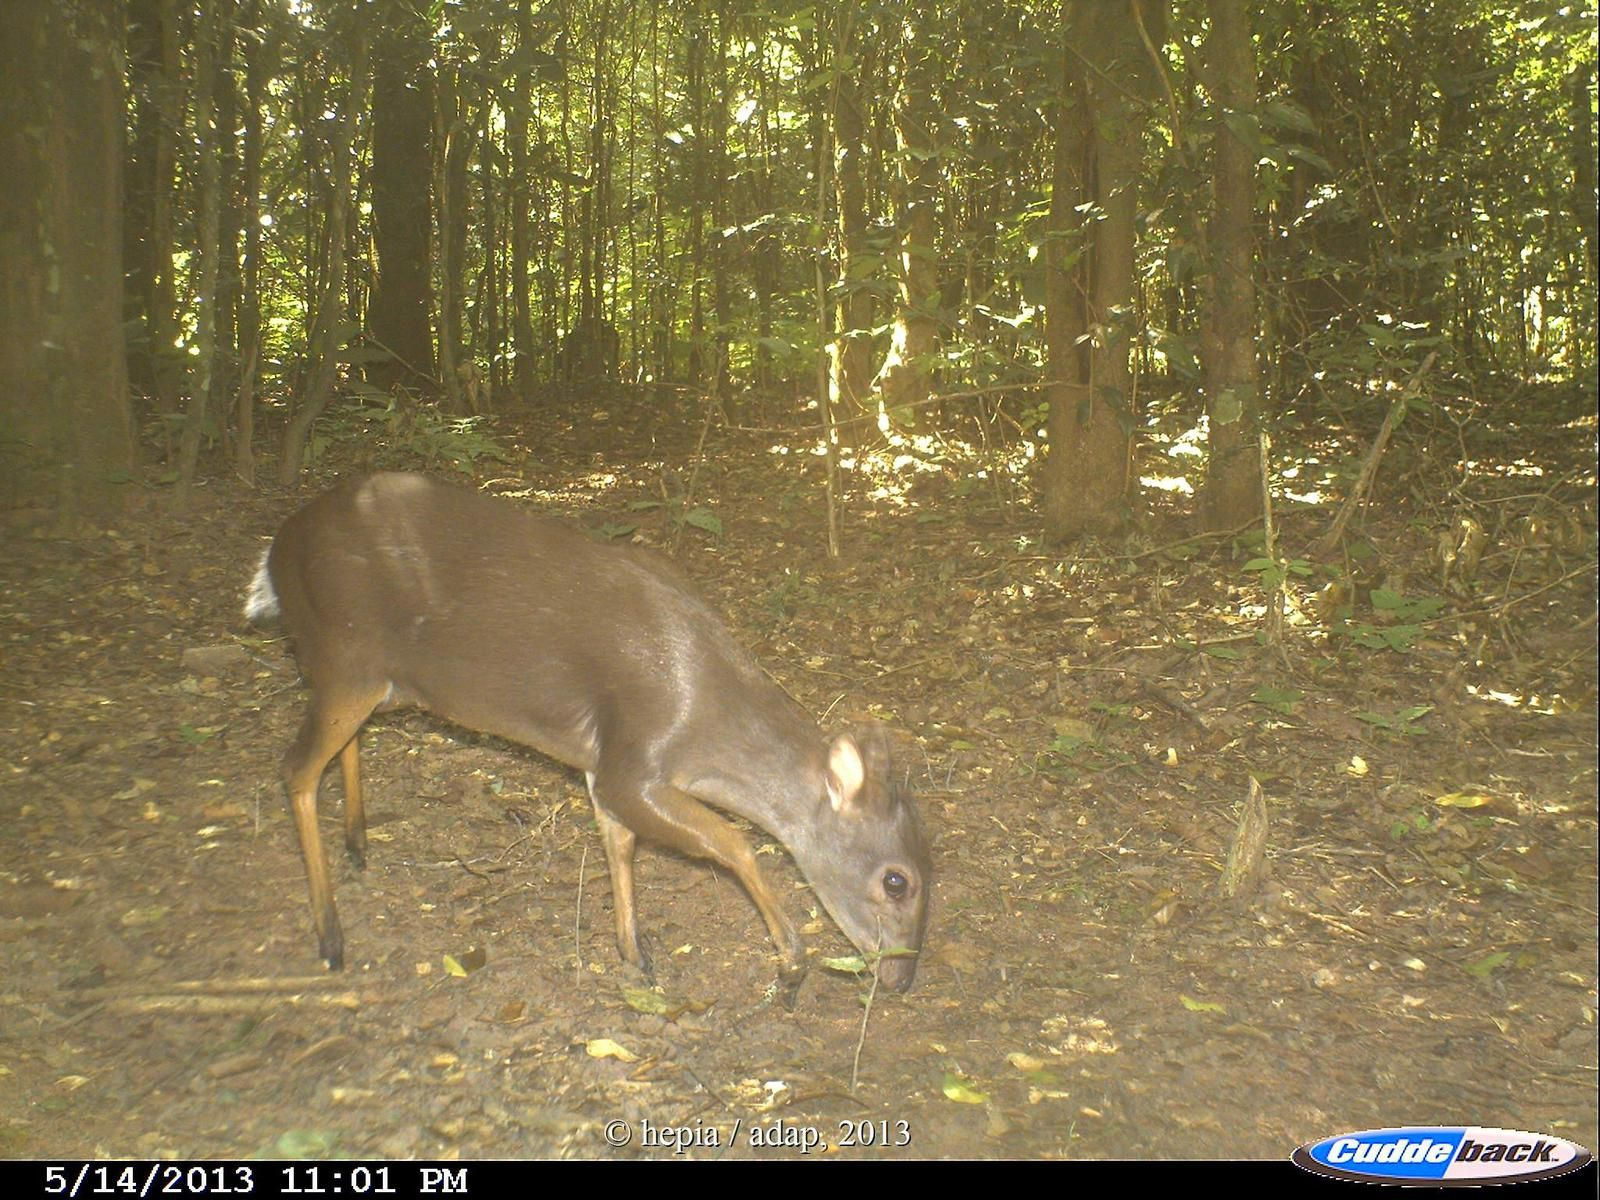 Blue duiker in the miombo woodlands